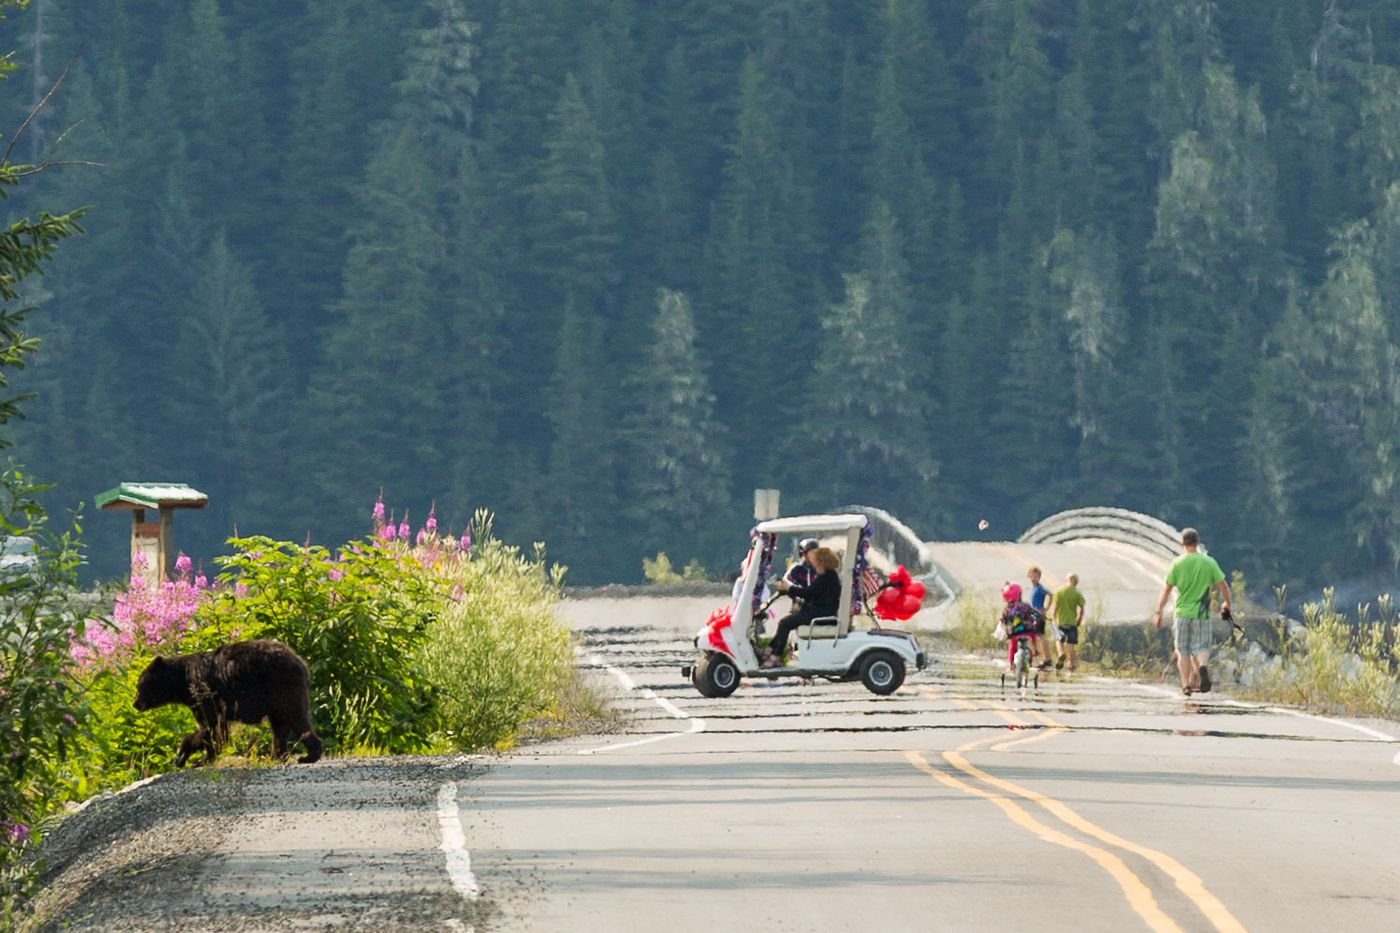 A black bear crosses the road during the Independence Day Walk, Run, Bike for Fun at the Border 5-k in Hyder on July 4, 2015. Bears are a daily presence in Hyder.